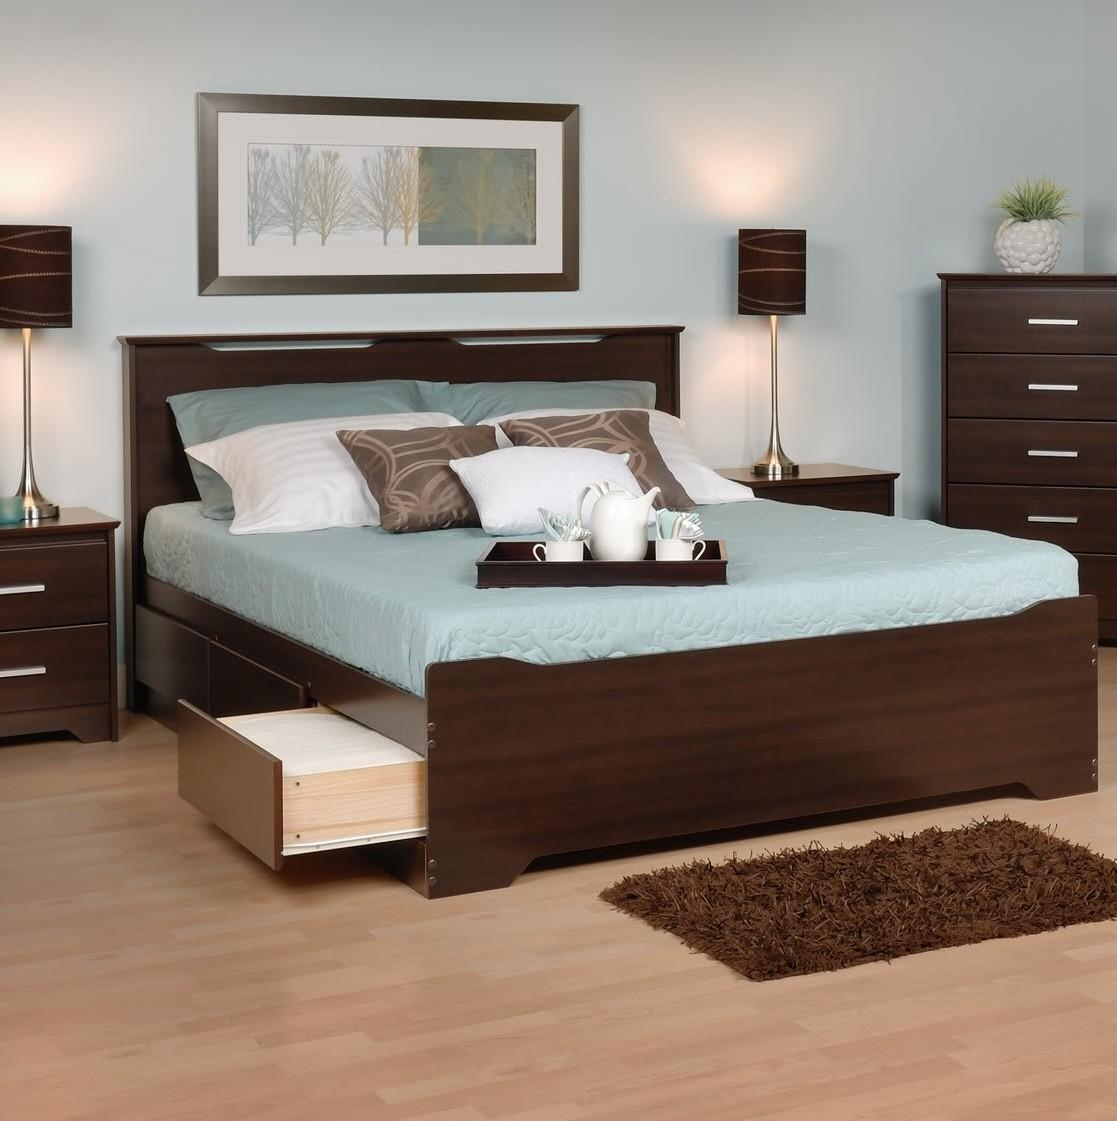 Coal Harbor Queen Bed-Bed Size:Full,Color:Espresso